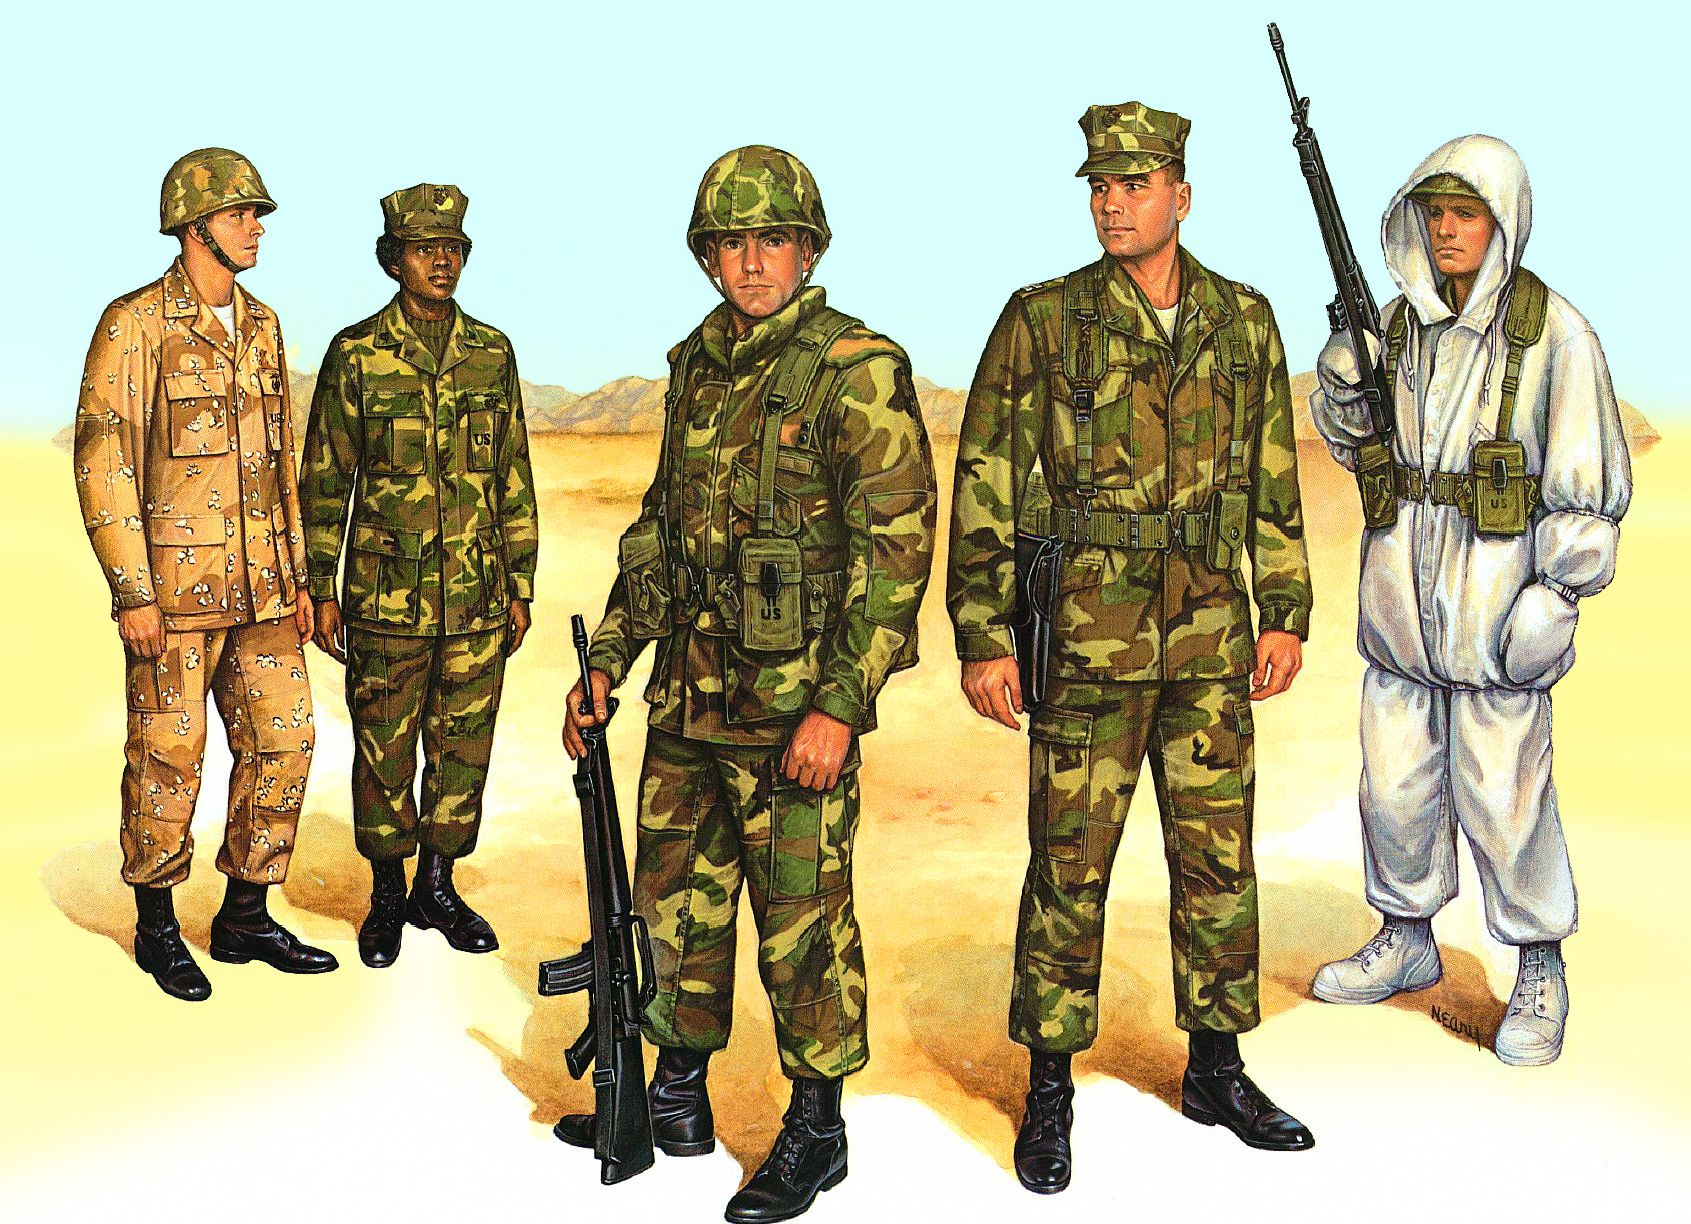 a history of the gulf war The history of the gulf war (1990-91) the history of the gulf war (1990-91)  troops that were said to be massing on the saudi border to justify the massive deployment of us troops to the gulf the course of the war the night death was roaming by huda m al yassiri,.